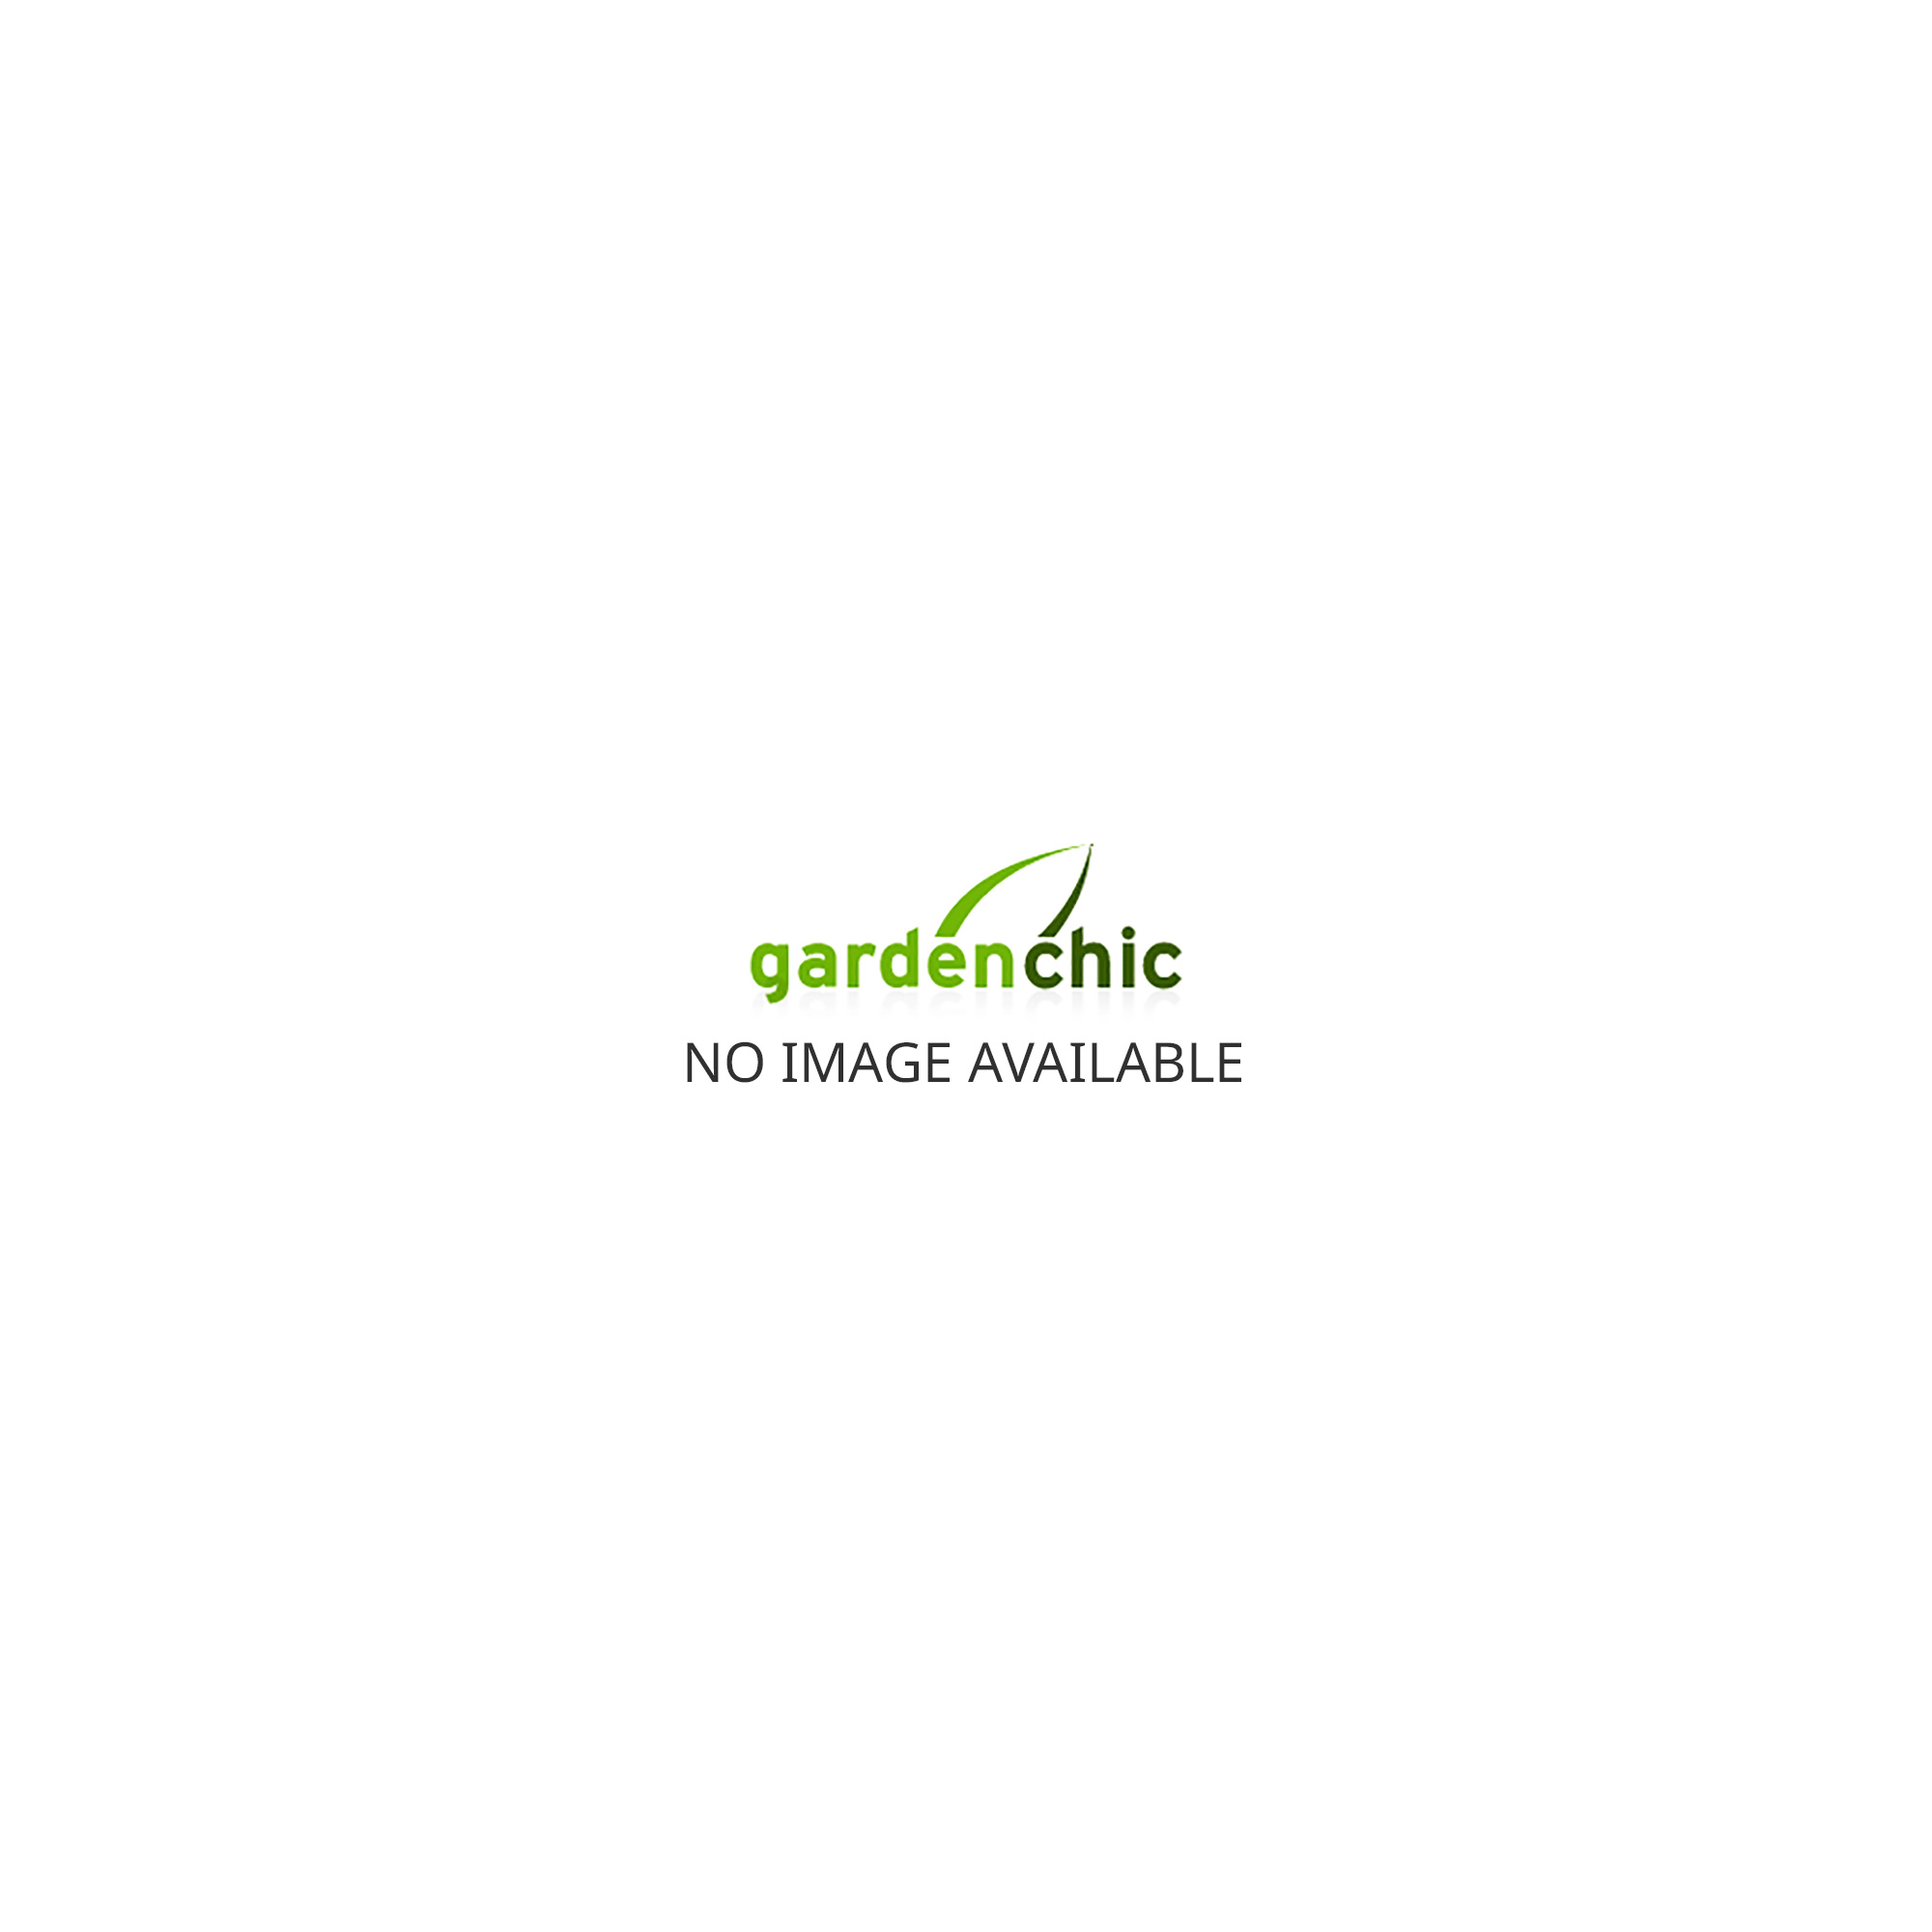 IDA 3300 Wall Garden 8ft x 4ft Greenhouse - Silver FREE Matching Base until APRIL 2018